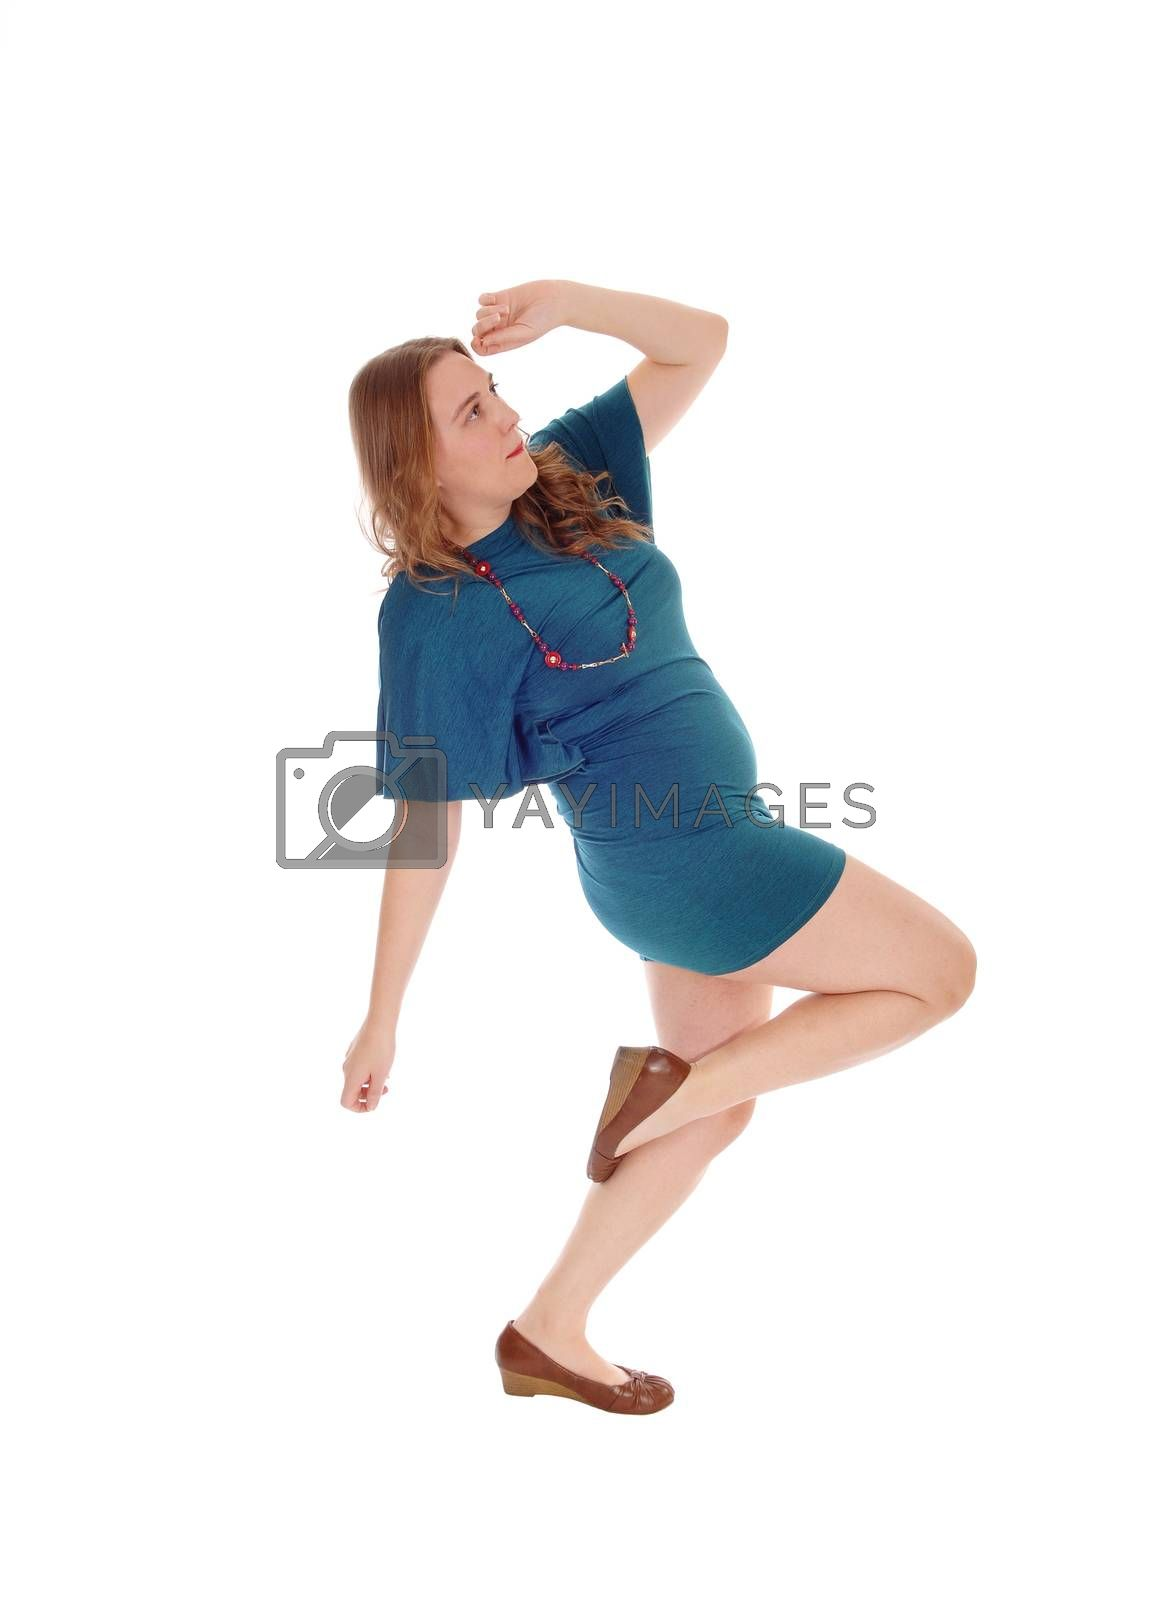 Royalty free image of Woman in dress dancing. by feierabend